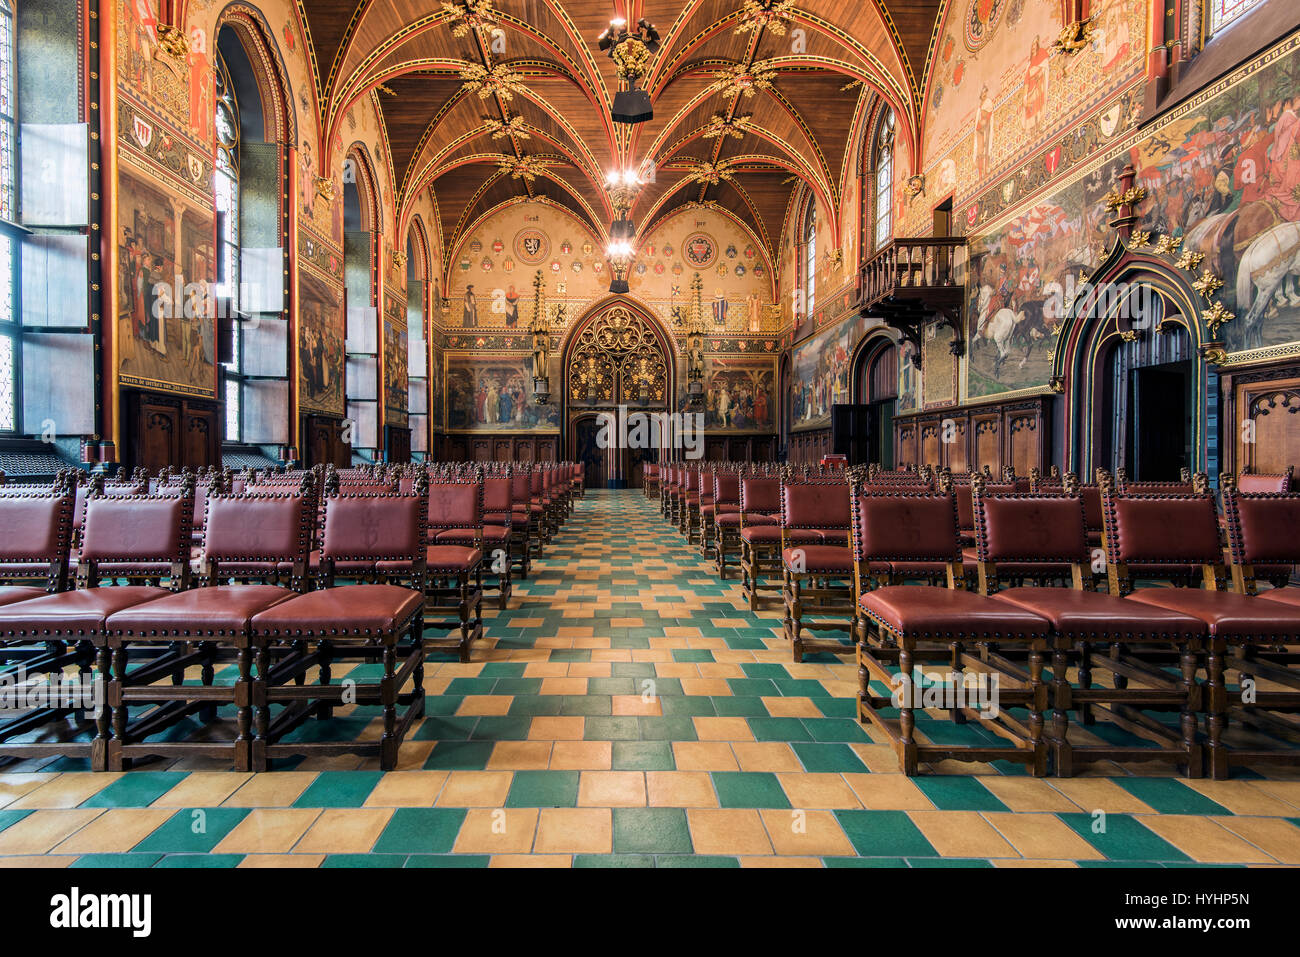 Gothic Hall, Stadhuis or City Hall building, Bruges, West Flanders, Belgium - Stock Image